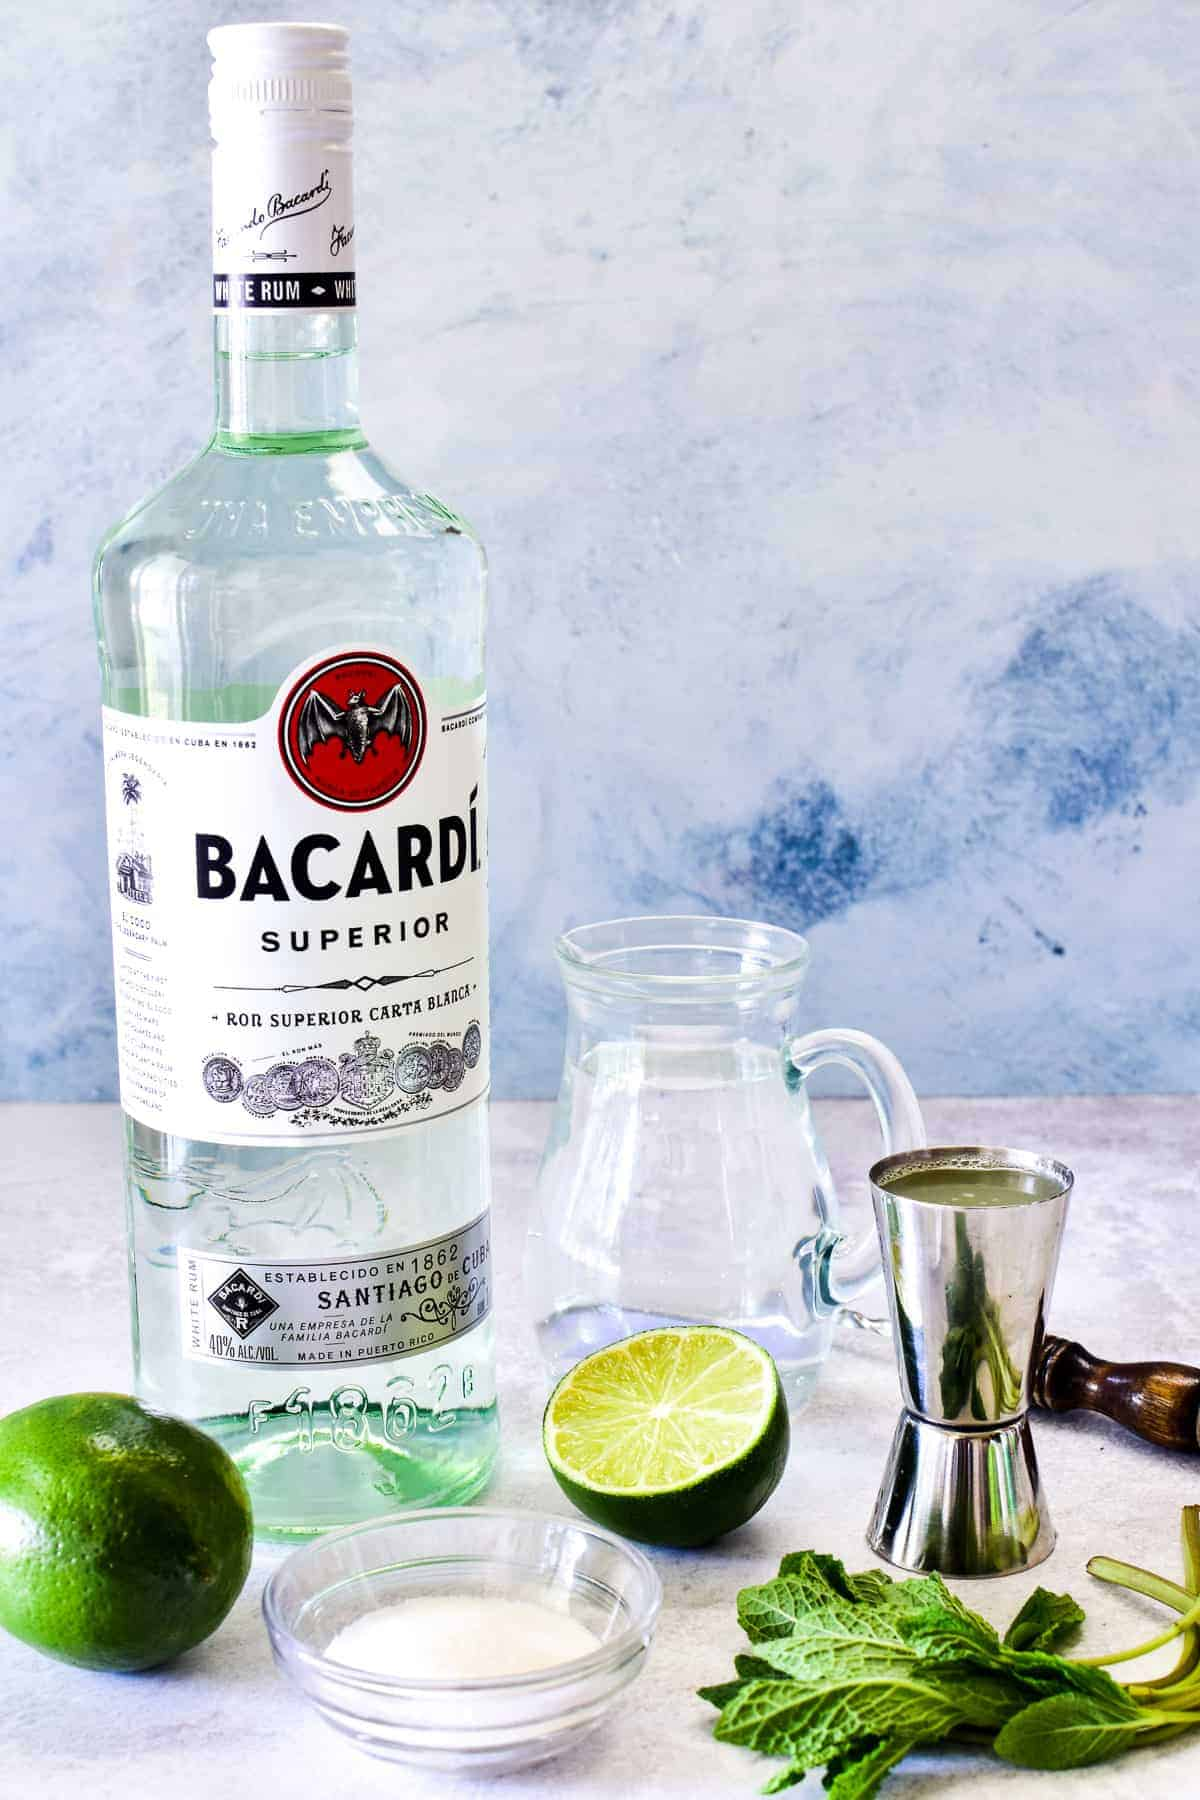 Mojito ingredients using Bacardi white rum